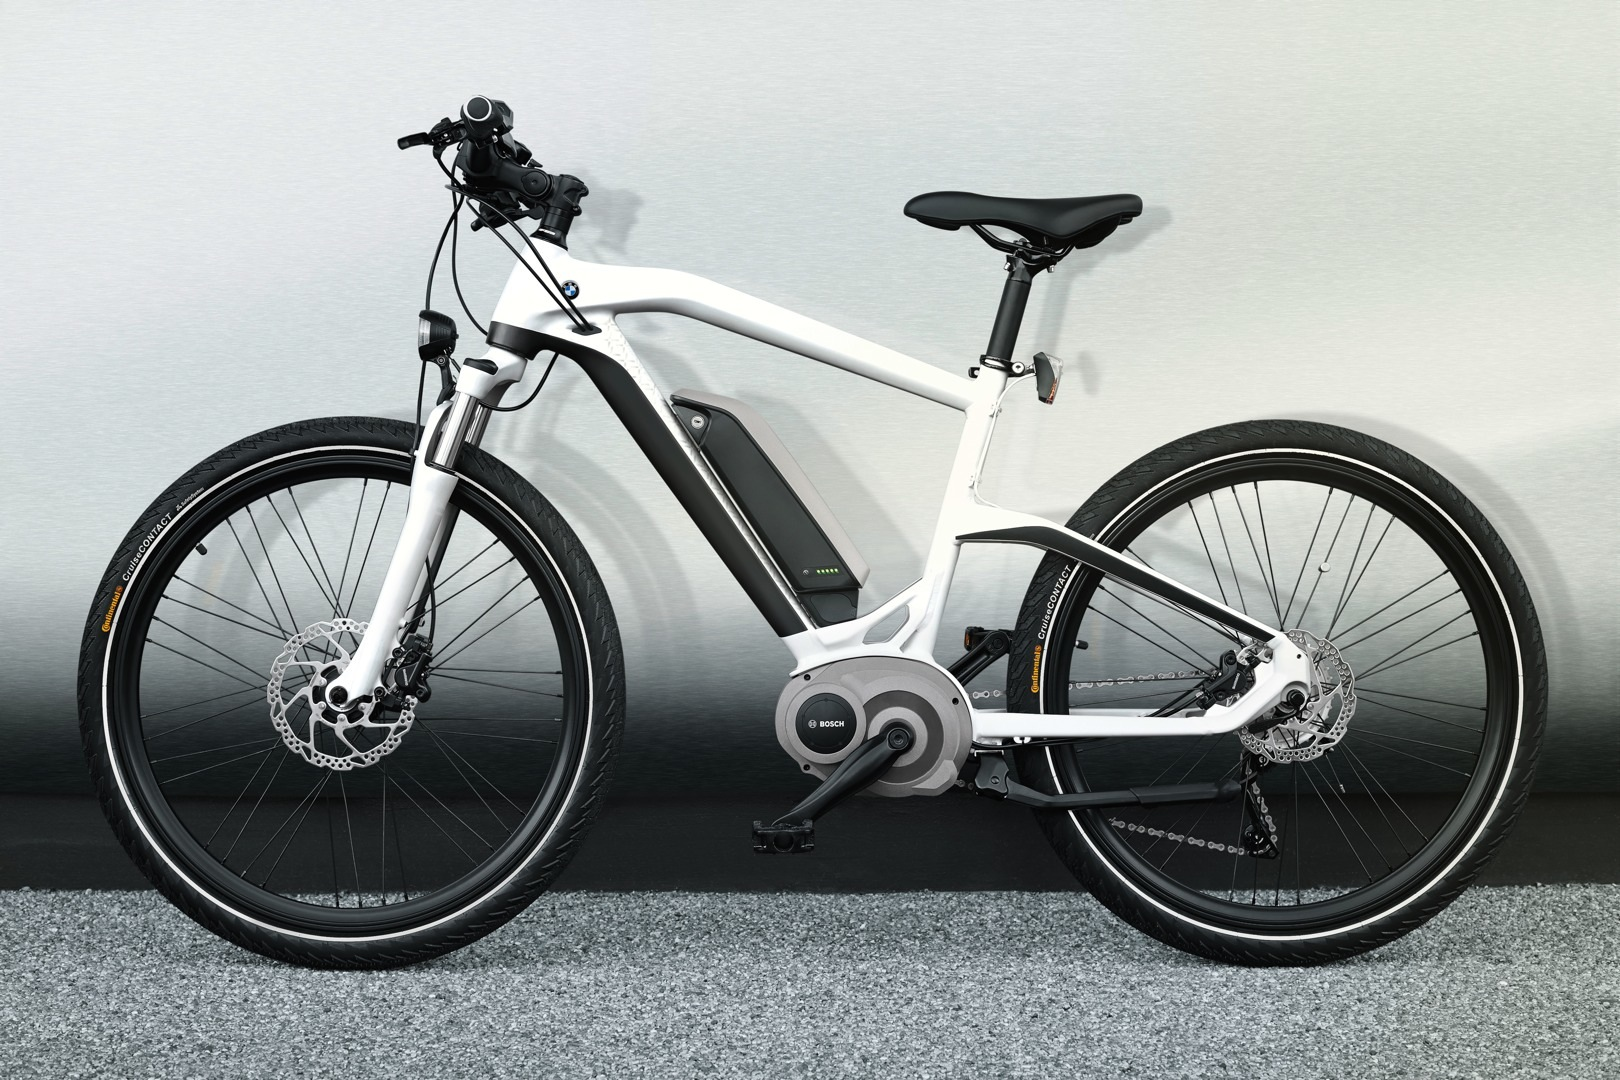 d878aac80 New BMW Mountainbike Cross Country - autoevolution